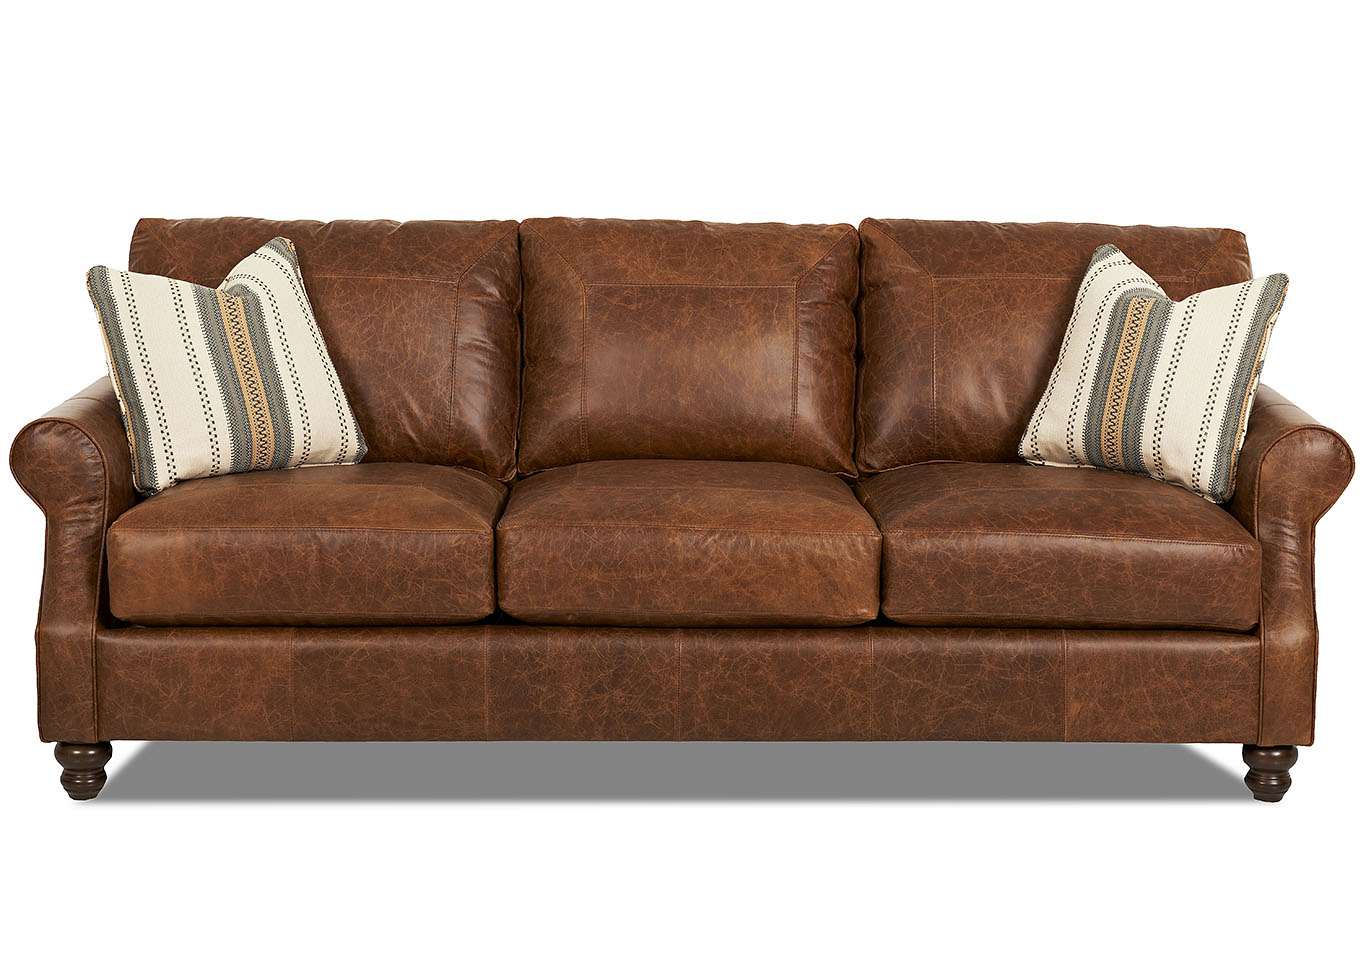 Tifton Brown Stationary Leather Sofa,Klaussner Home Furnishings